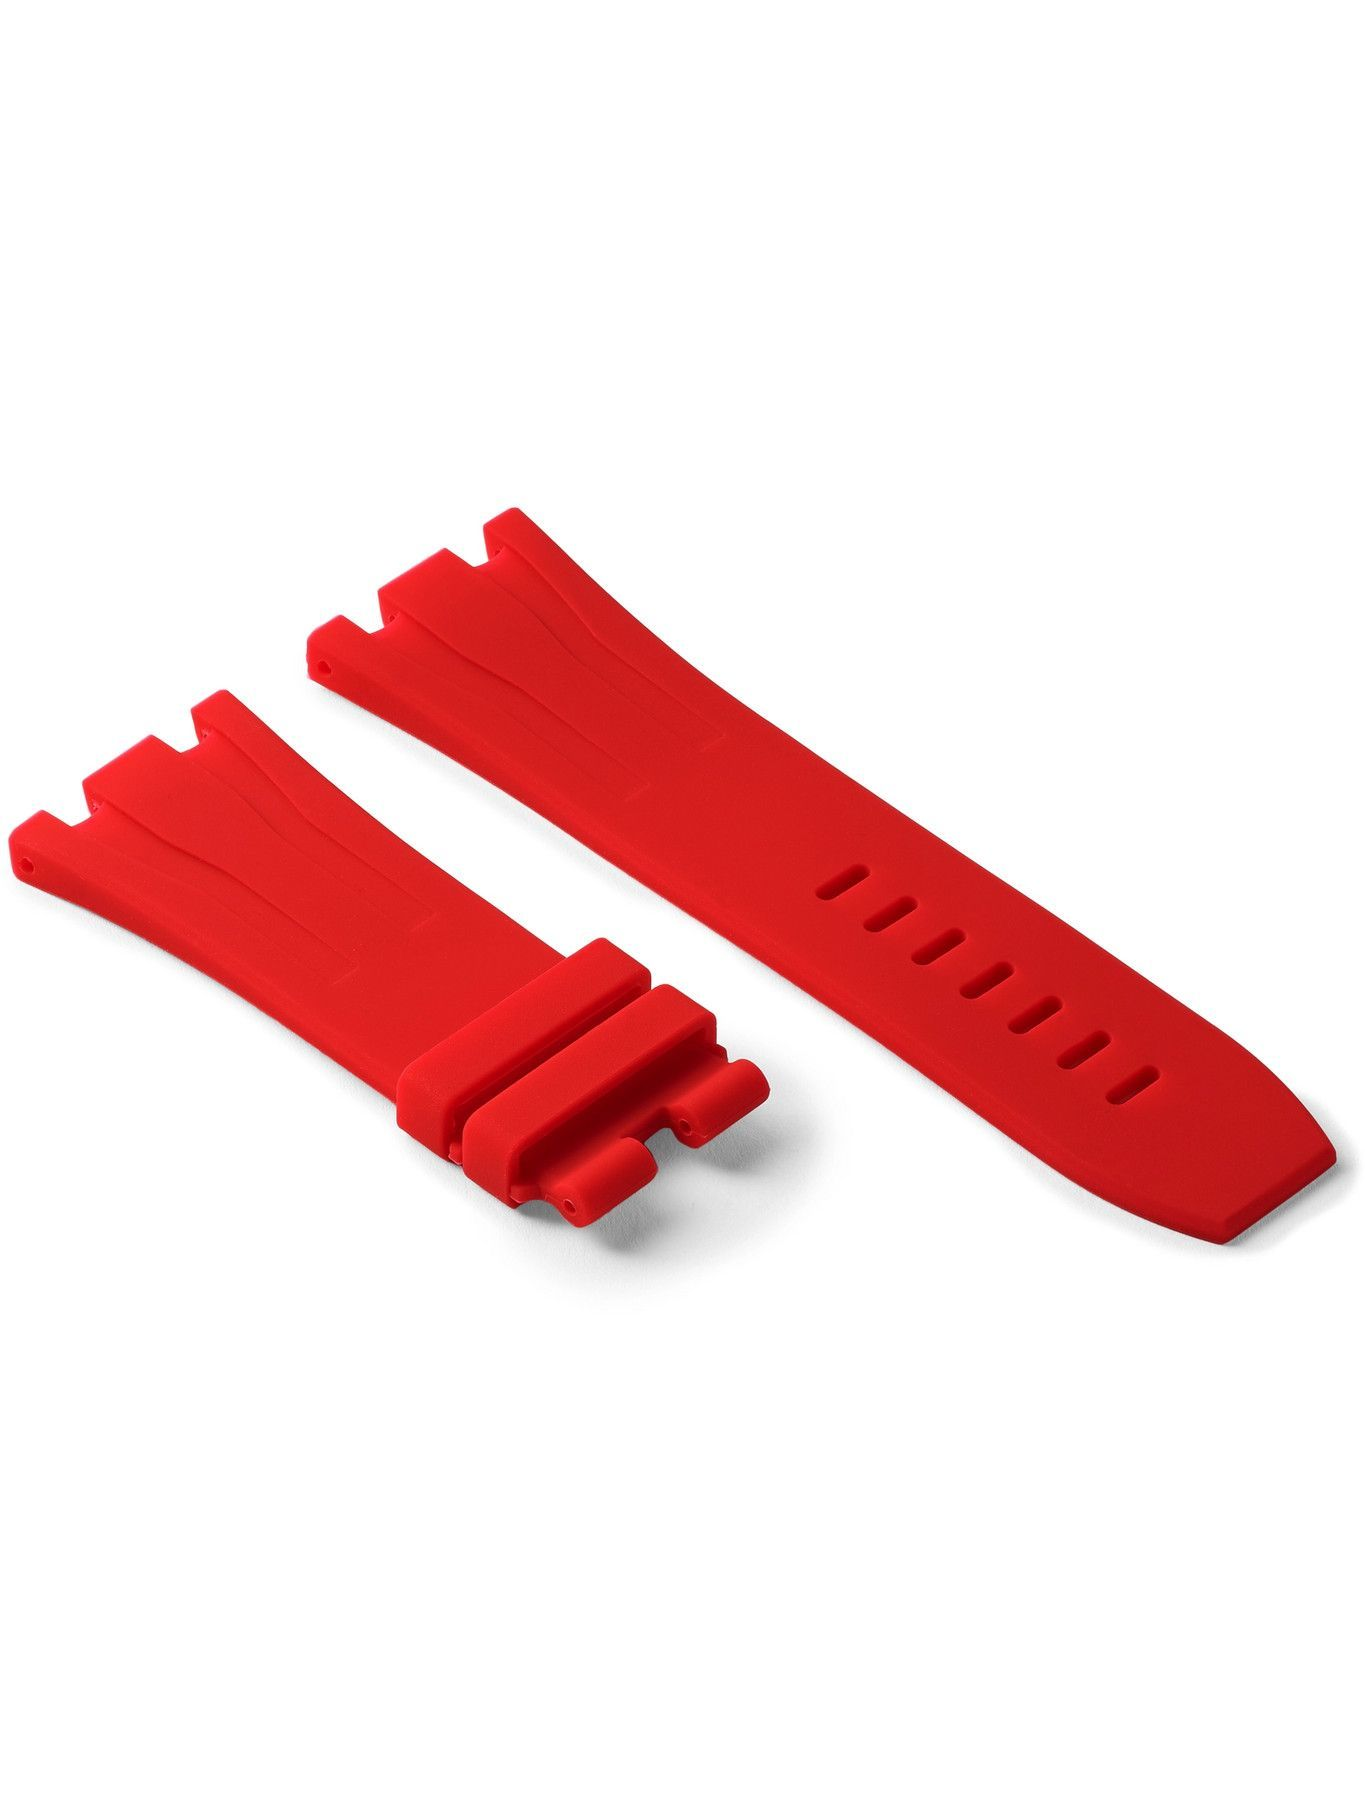 Photo: Horus Watch Straps - Tang 44mm Rubber Watch Strap - Red